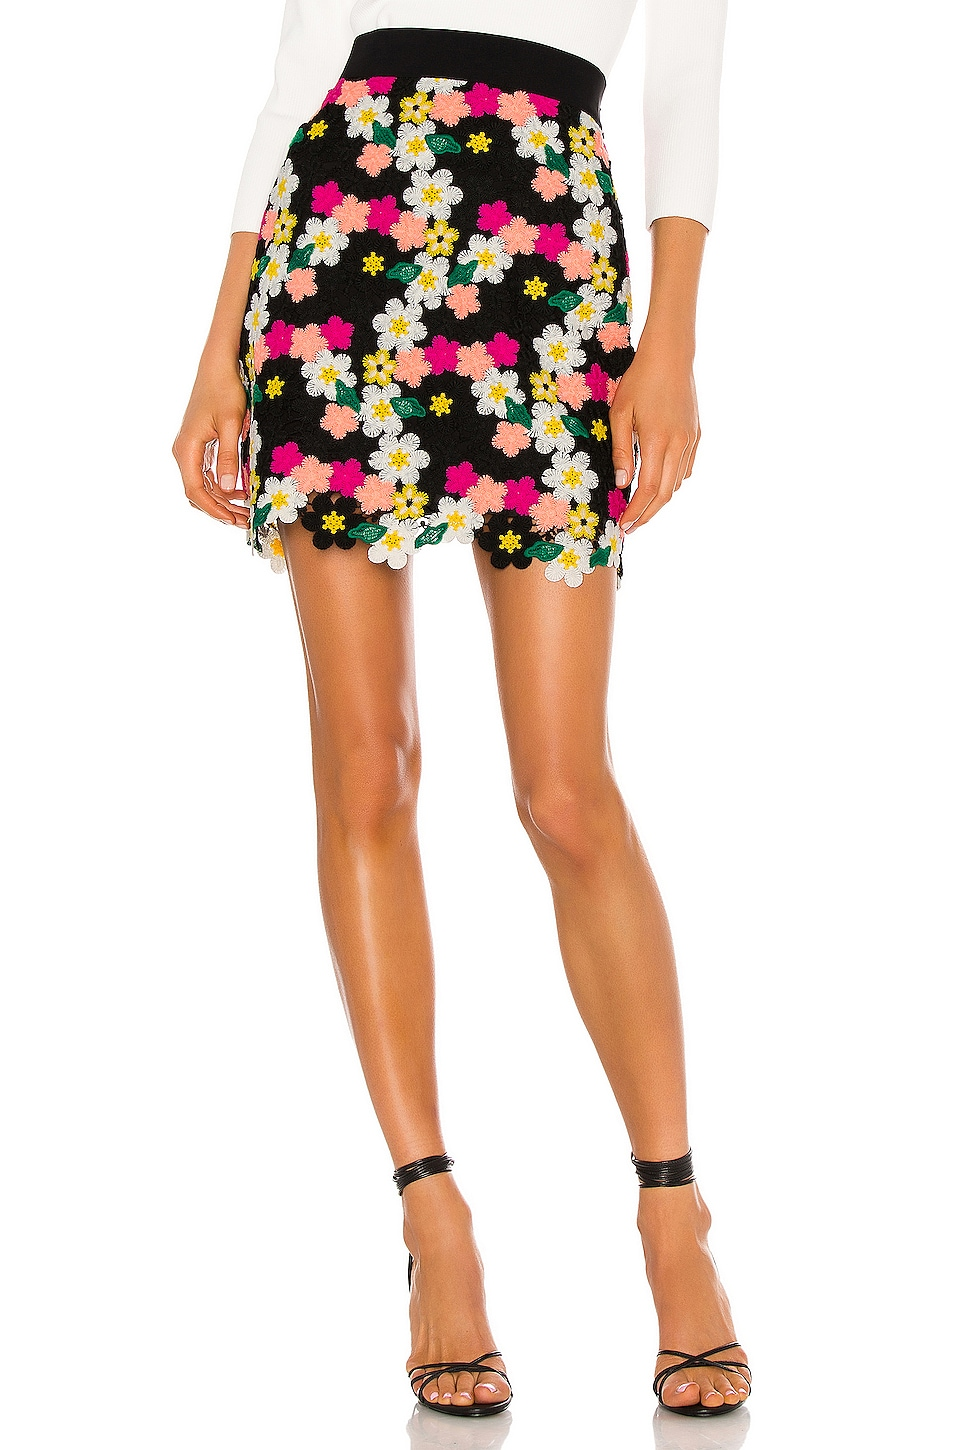 MILLY Floral Crochet Mini Skirt in Dark Floral